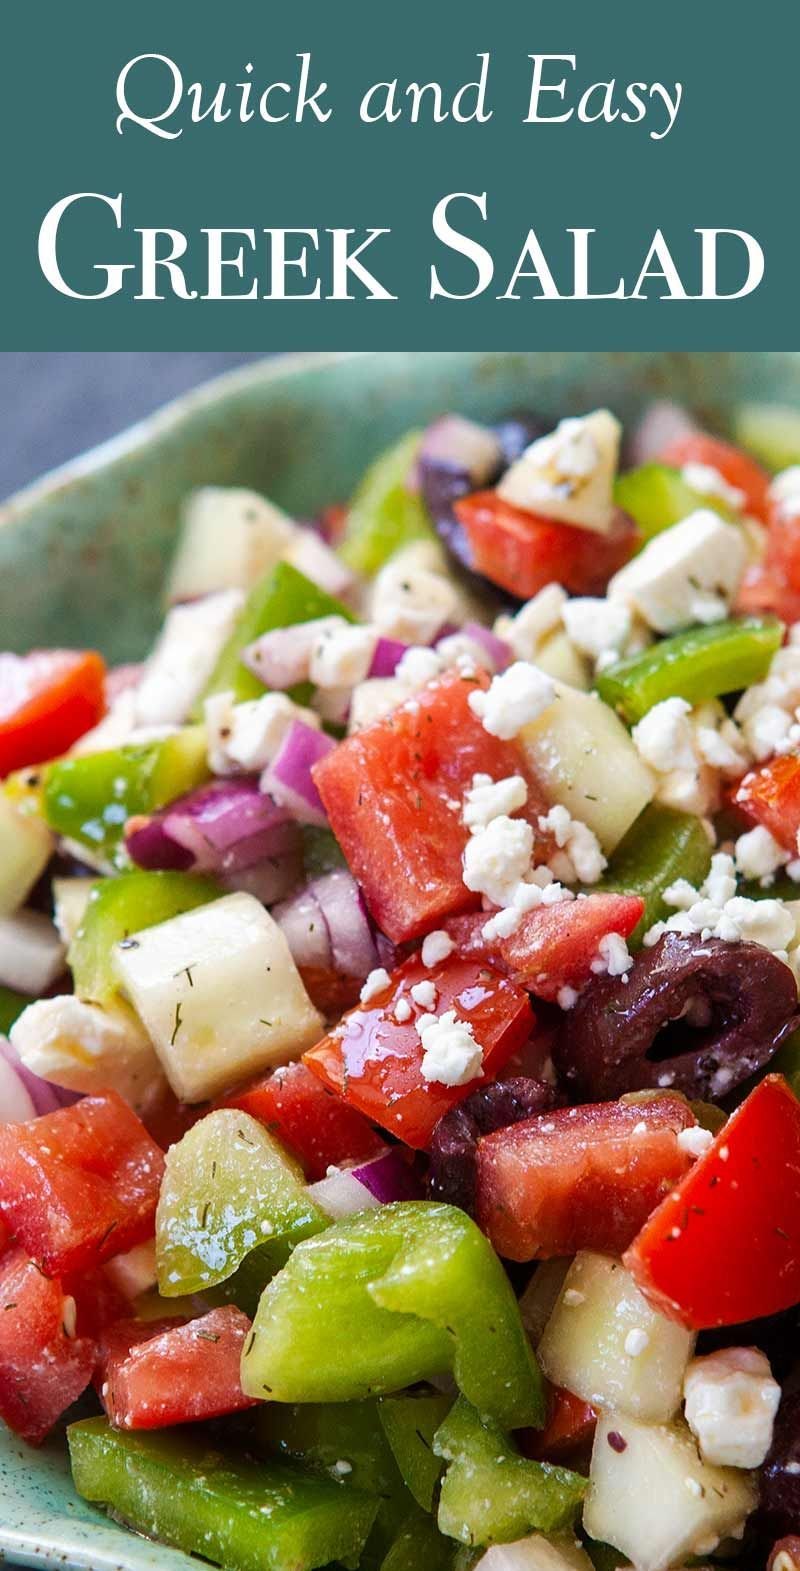 Easy Greek Salad Bellpepperrecipes This Easy Greek Salad Is Made With Plum Tomatoes Cucumbers Red Onion Bell Peppe Griechischer Salat Salat Sommer Picknick